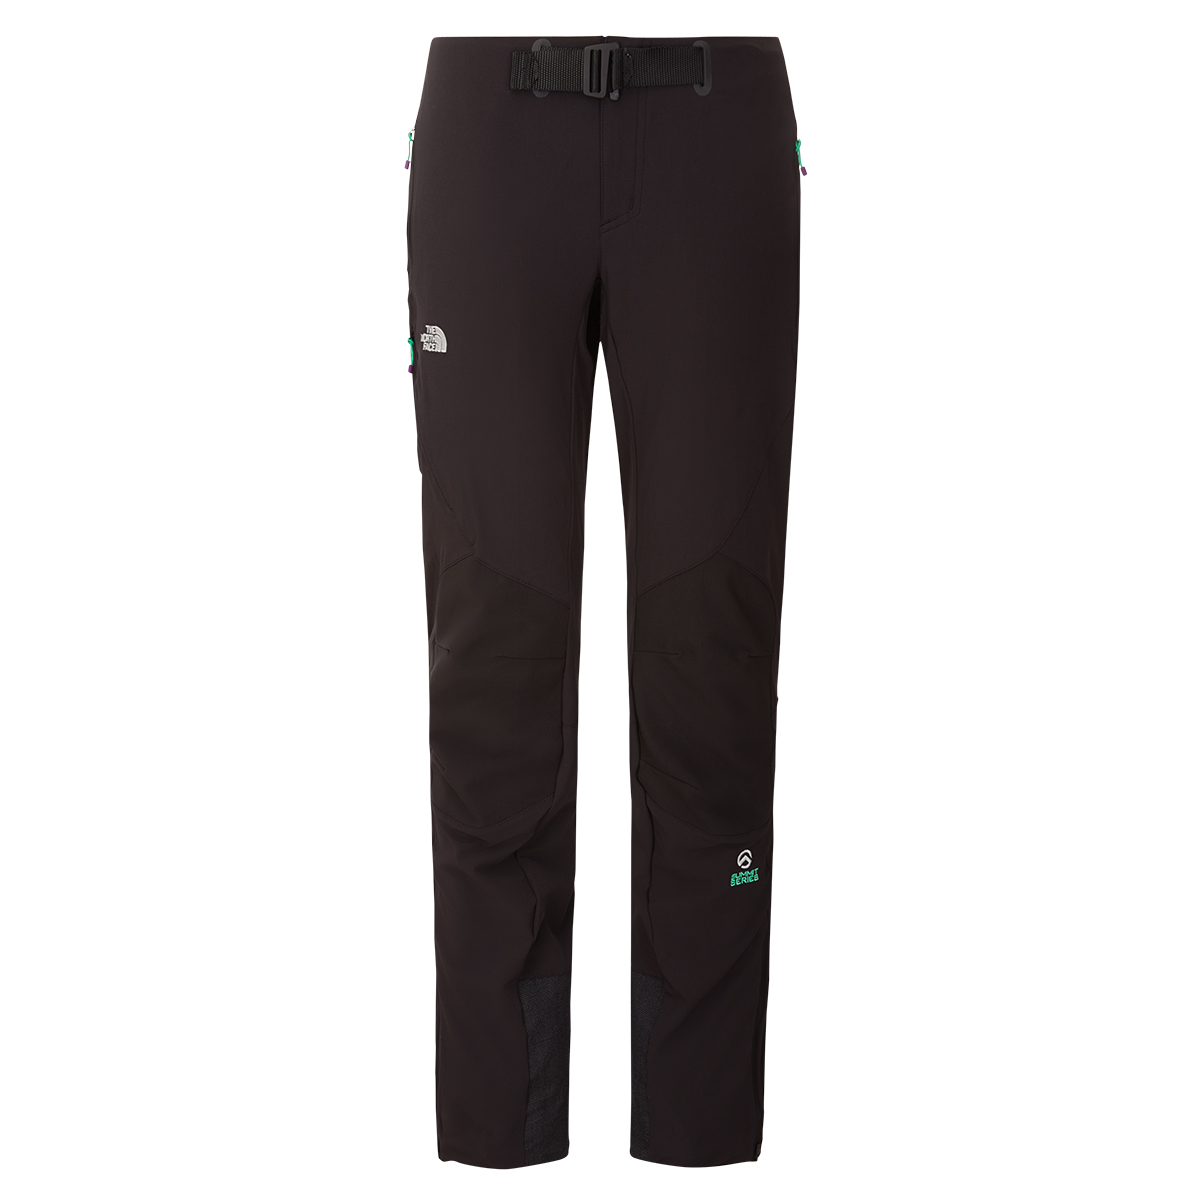 c1dbc634adb5d The North Face Asteroid Pant (Woman) | Technical Trousers | EpicTV Shop